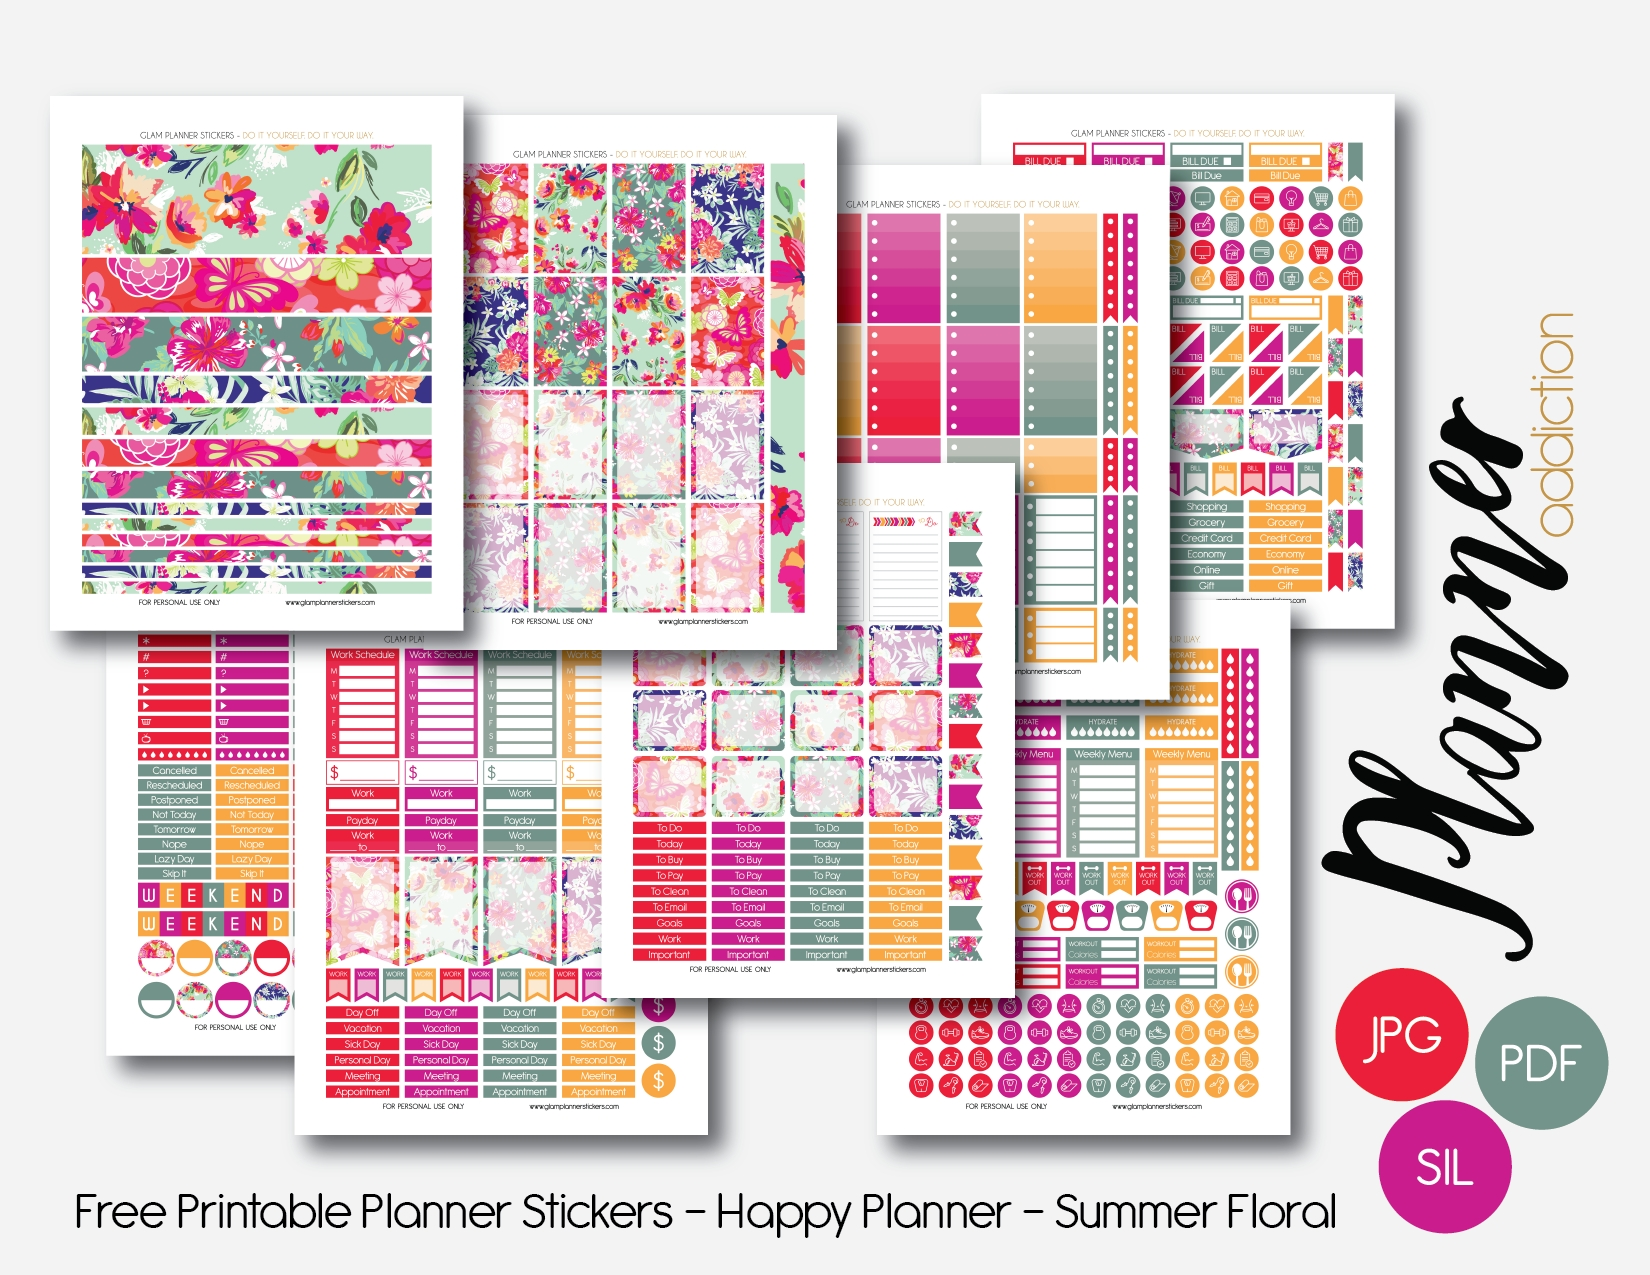 Free Printable Planner Stickers – Planner Addiction